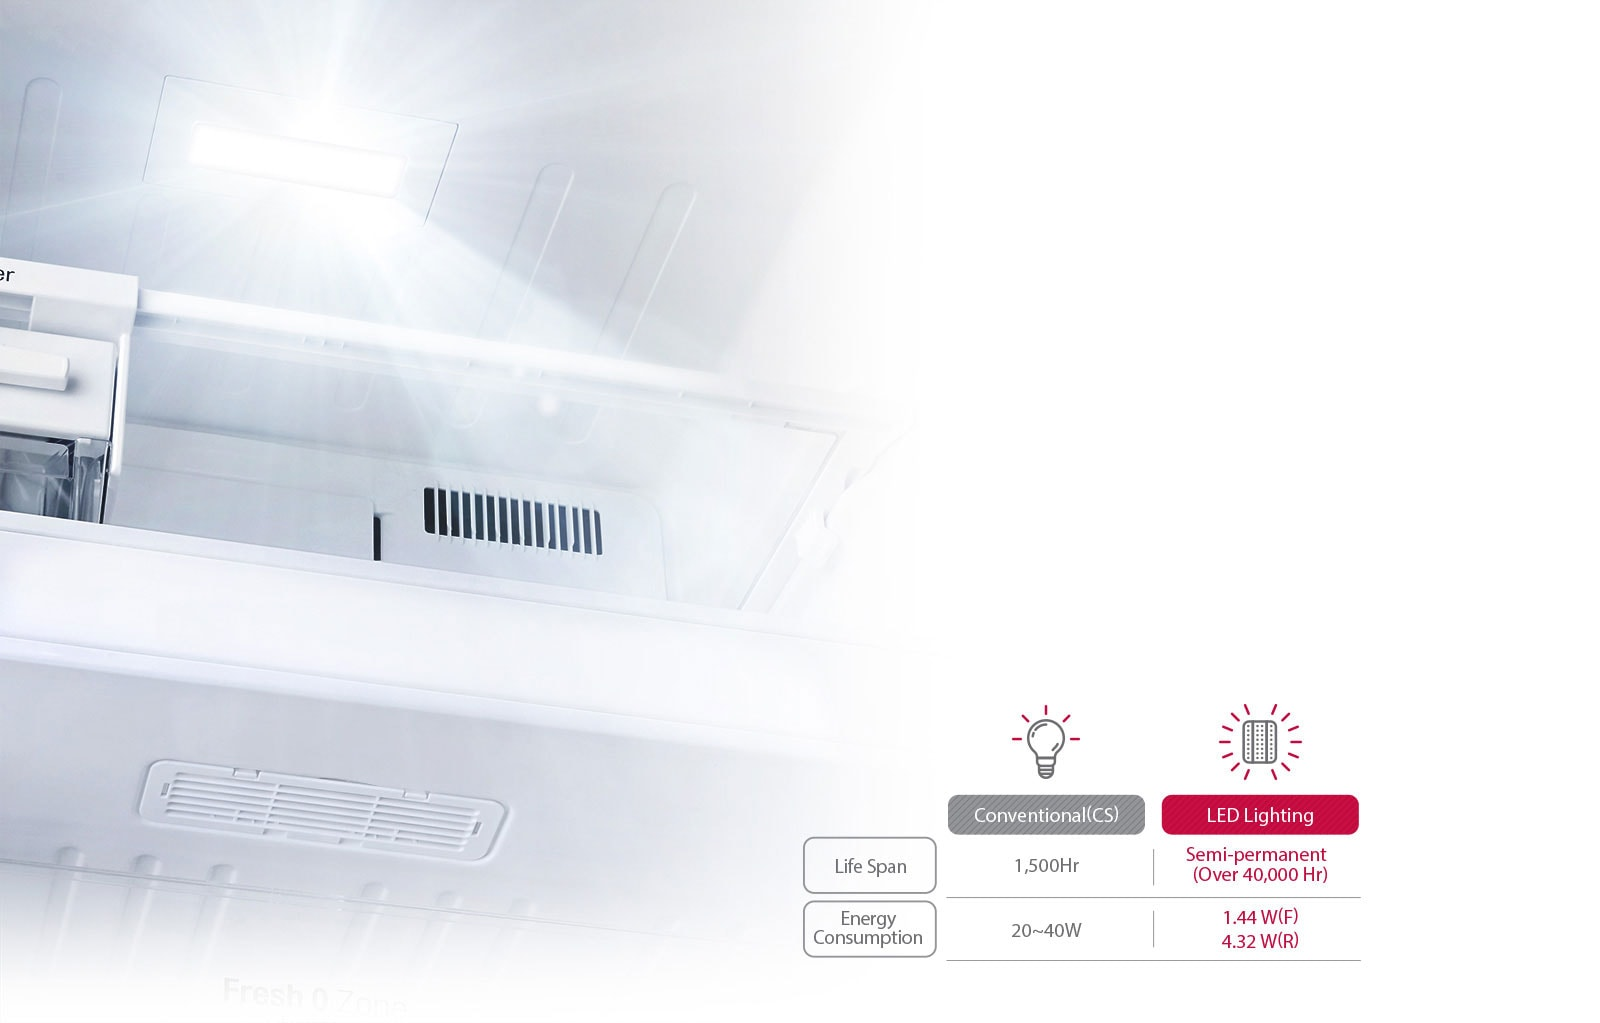 Refrigerators-LED-Lighting-Desktop